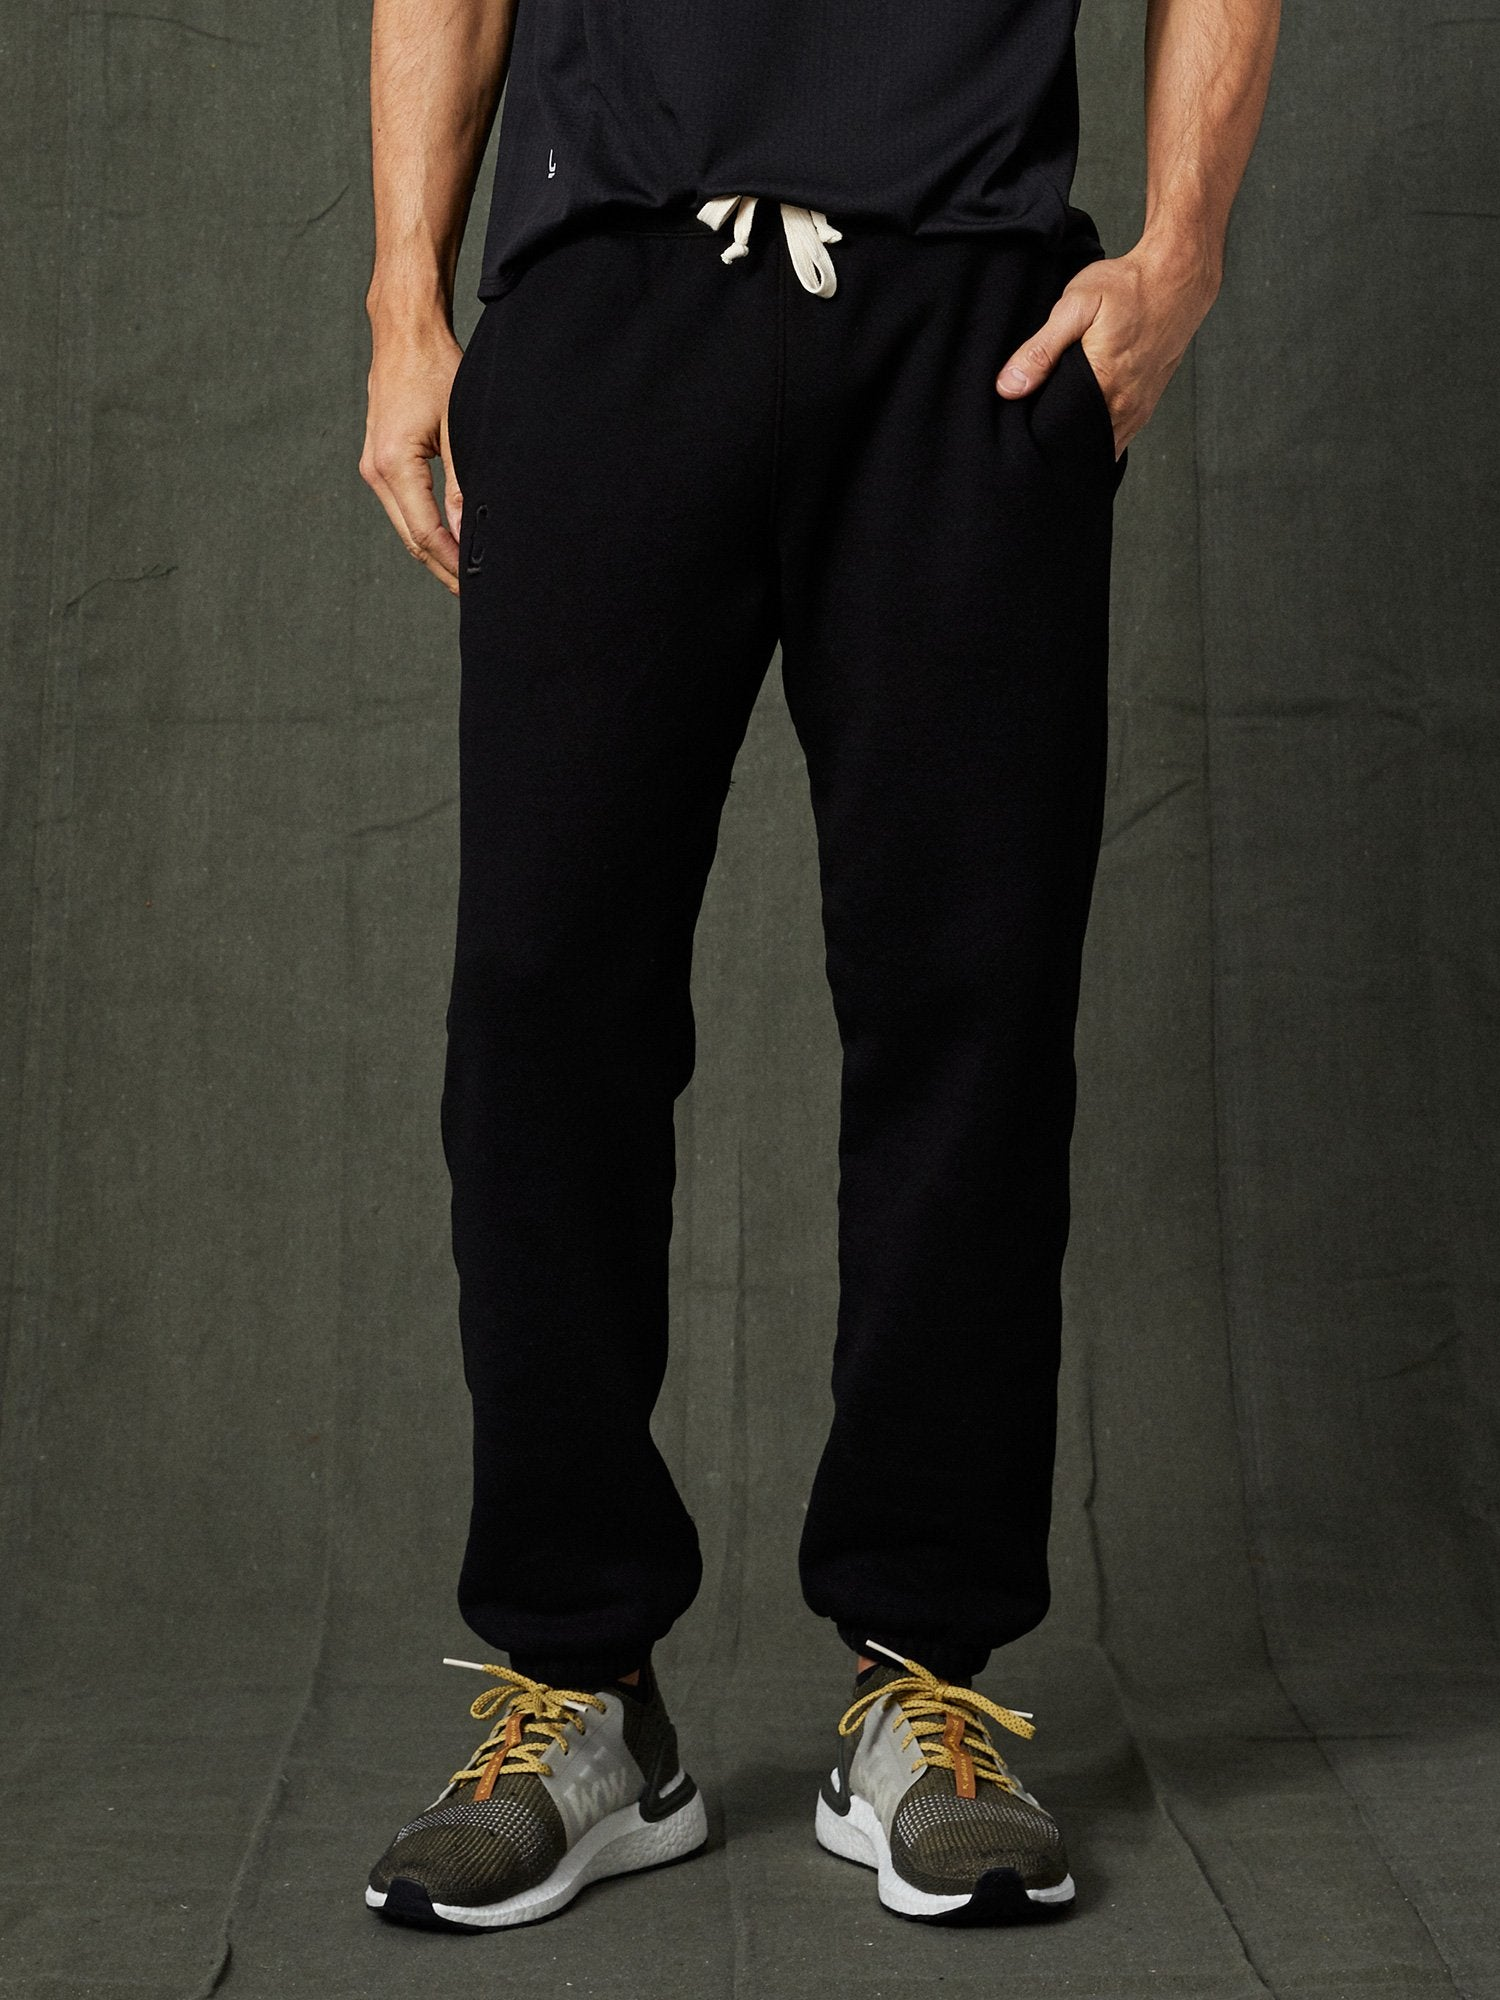 Thunder Sweatpants - Contenders Clothing